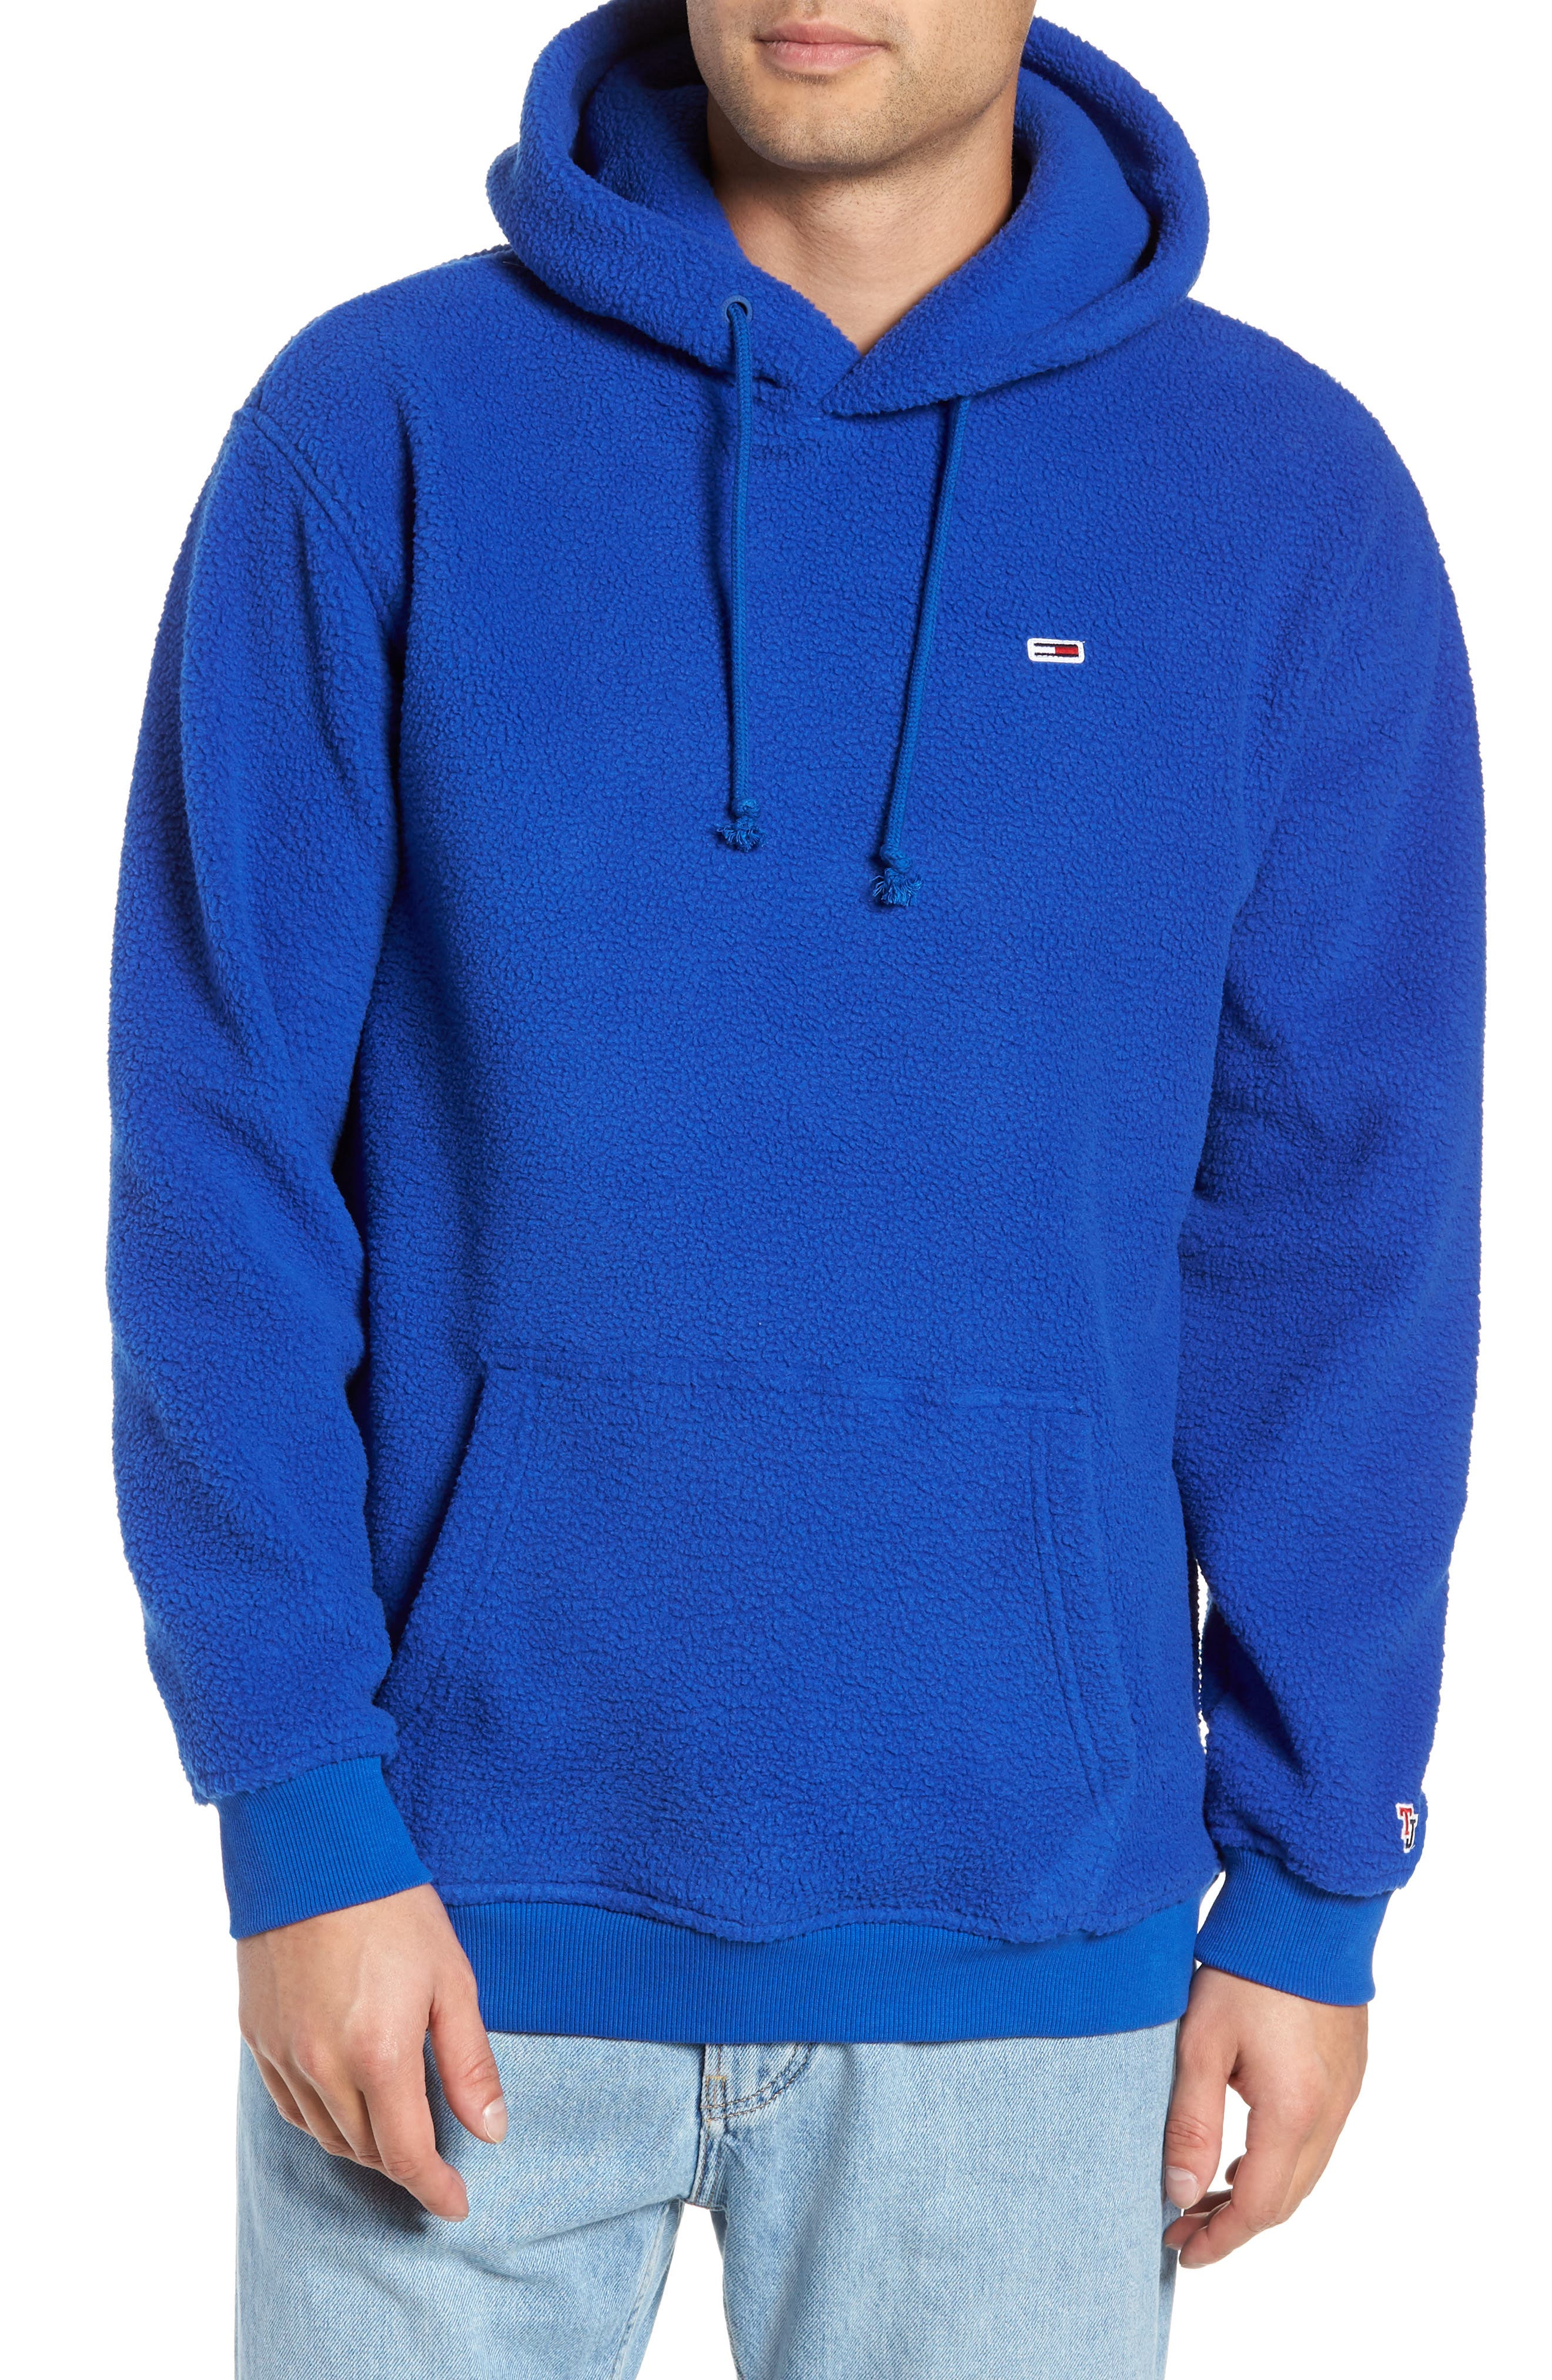 TJM Tommy Classics Polar Hoodie,                             Main thumbnail 1, color,                             SURF THE WEB